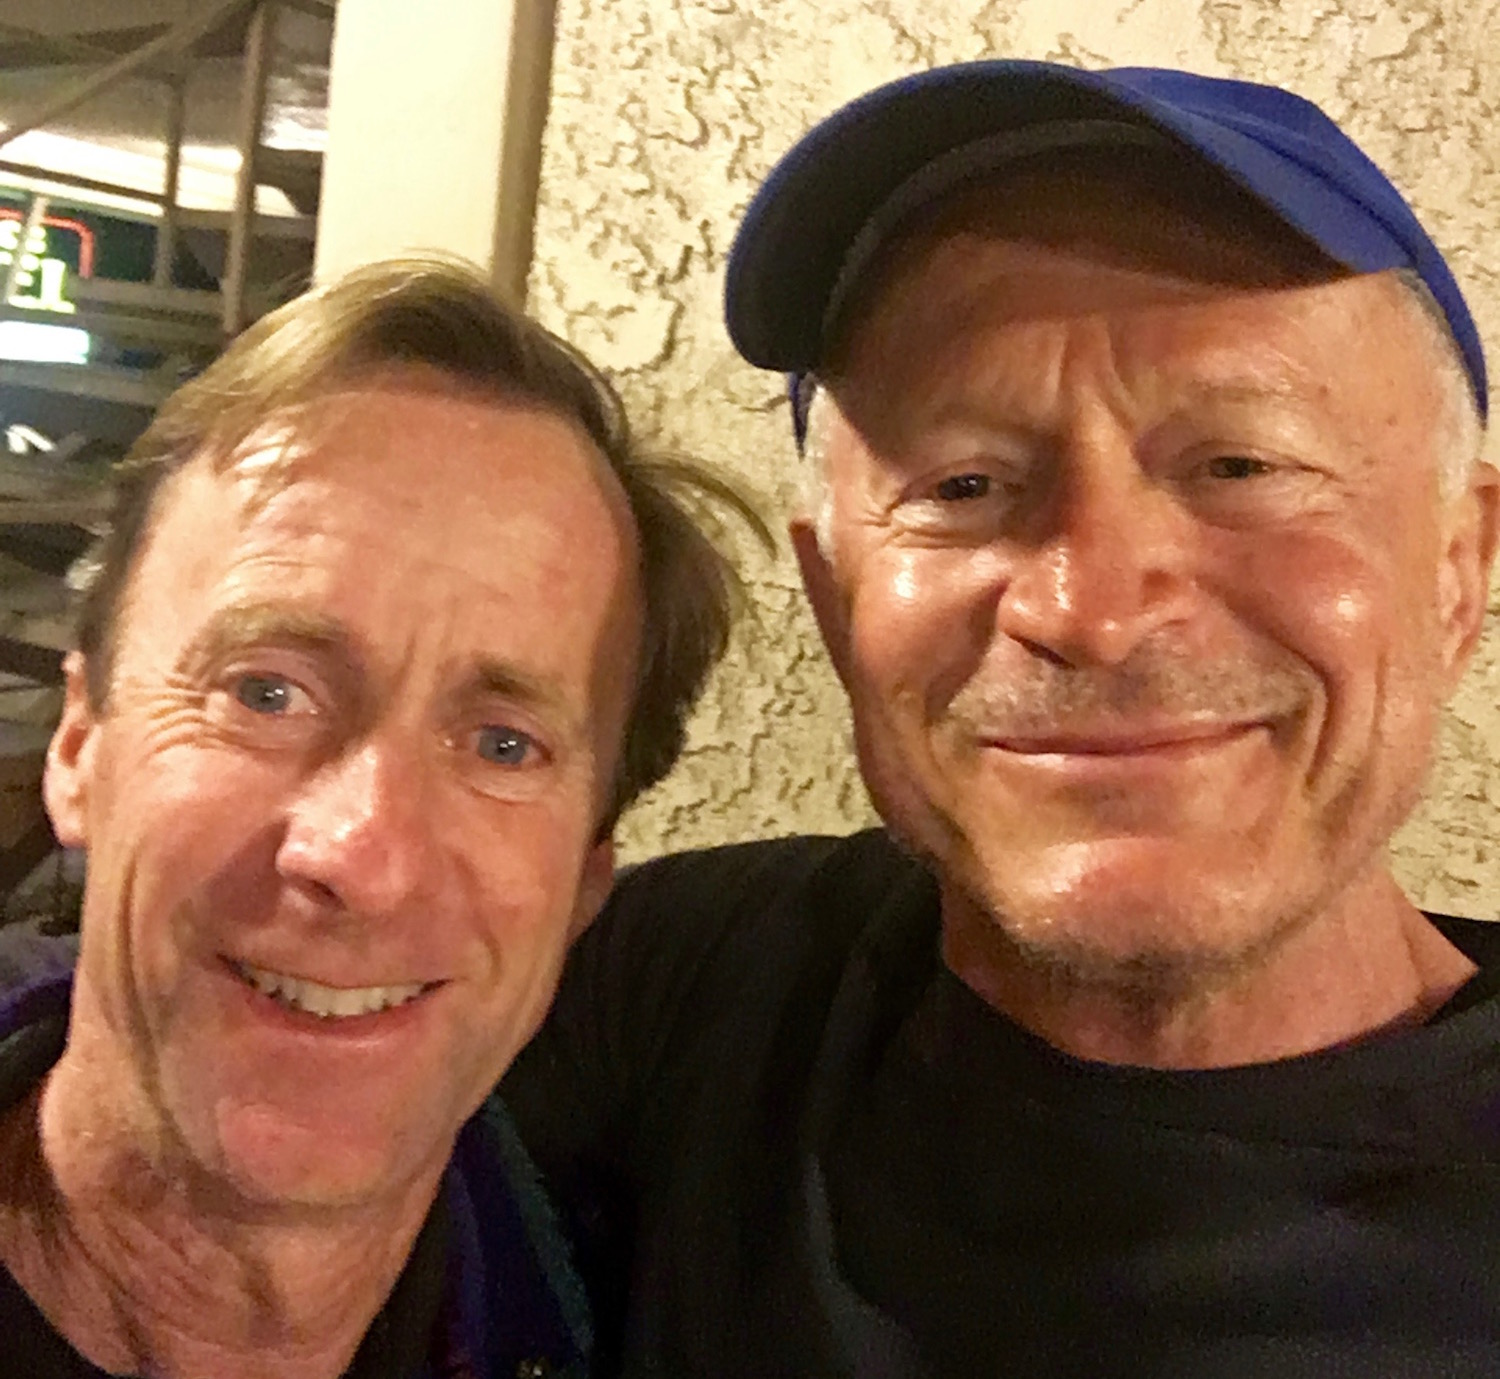 A selfie with me and Ian Cummings after a great meal at a local Taqueria in Lompoc.